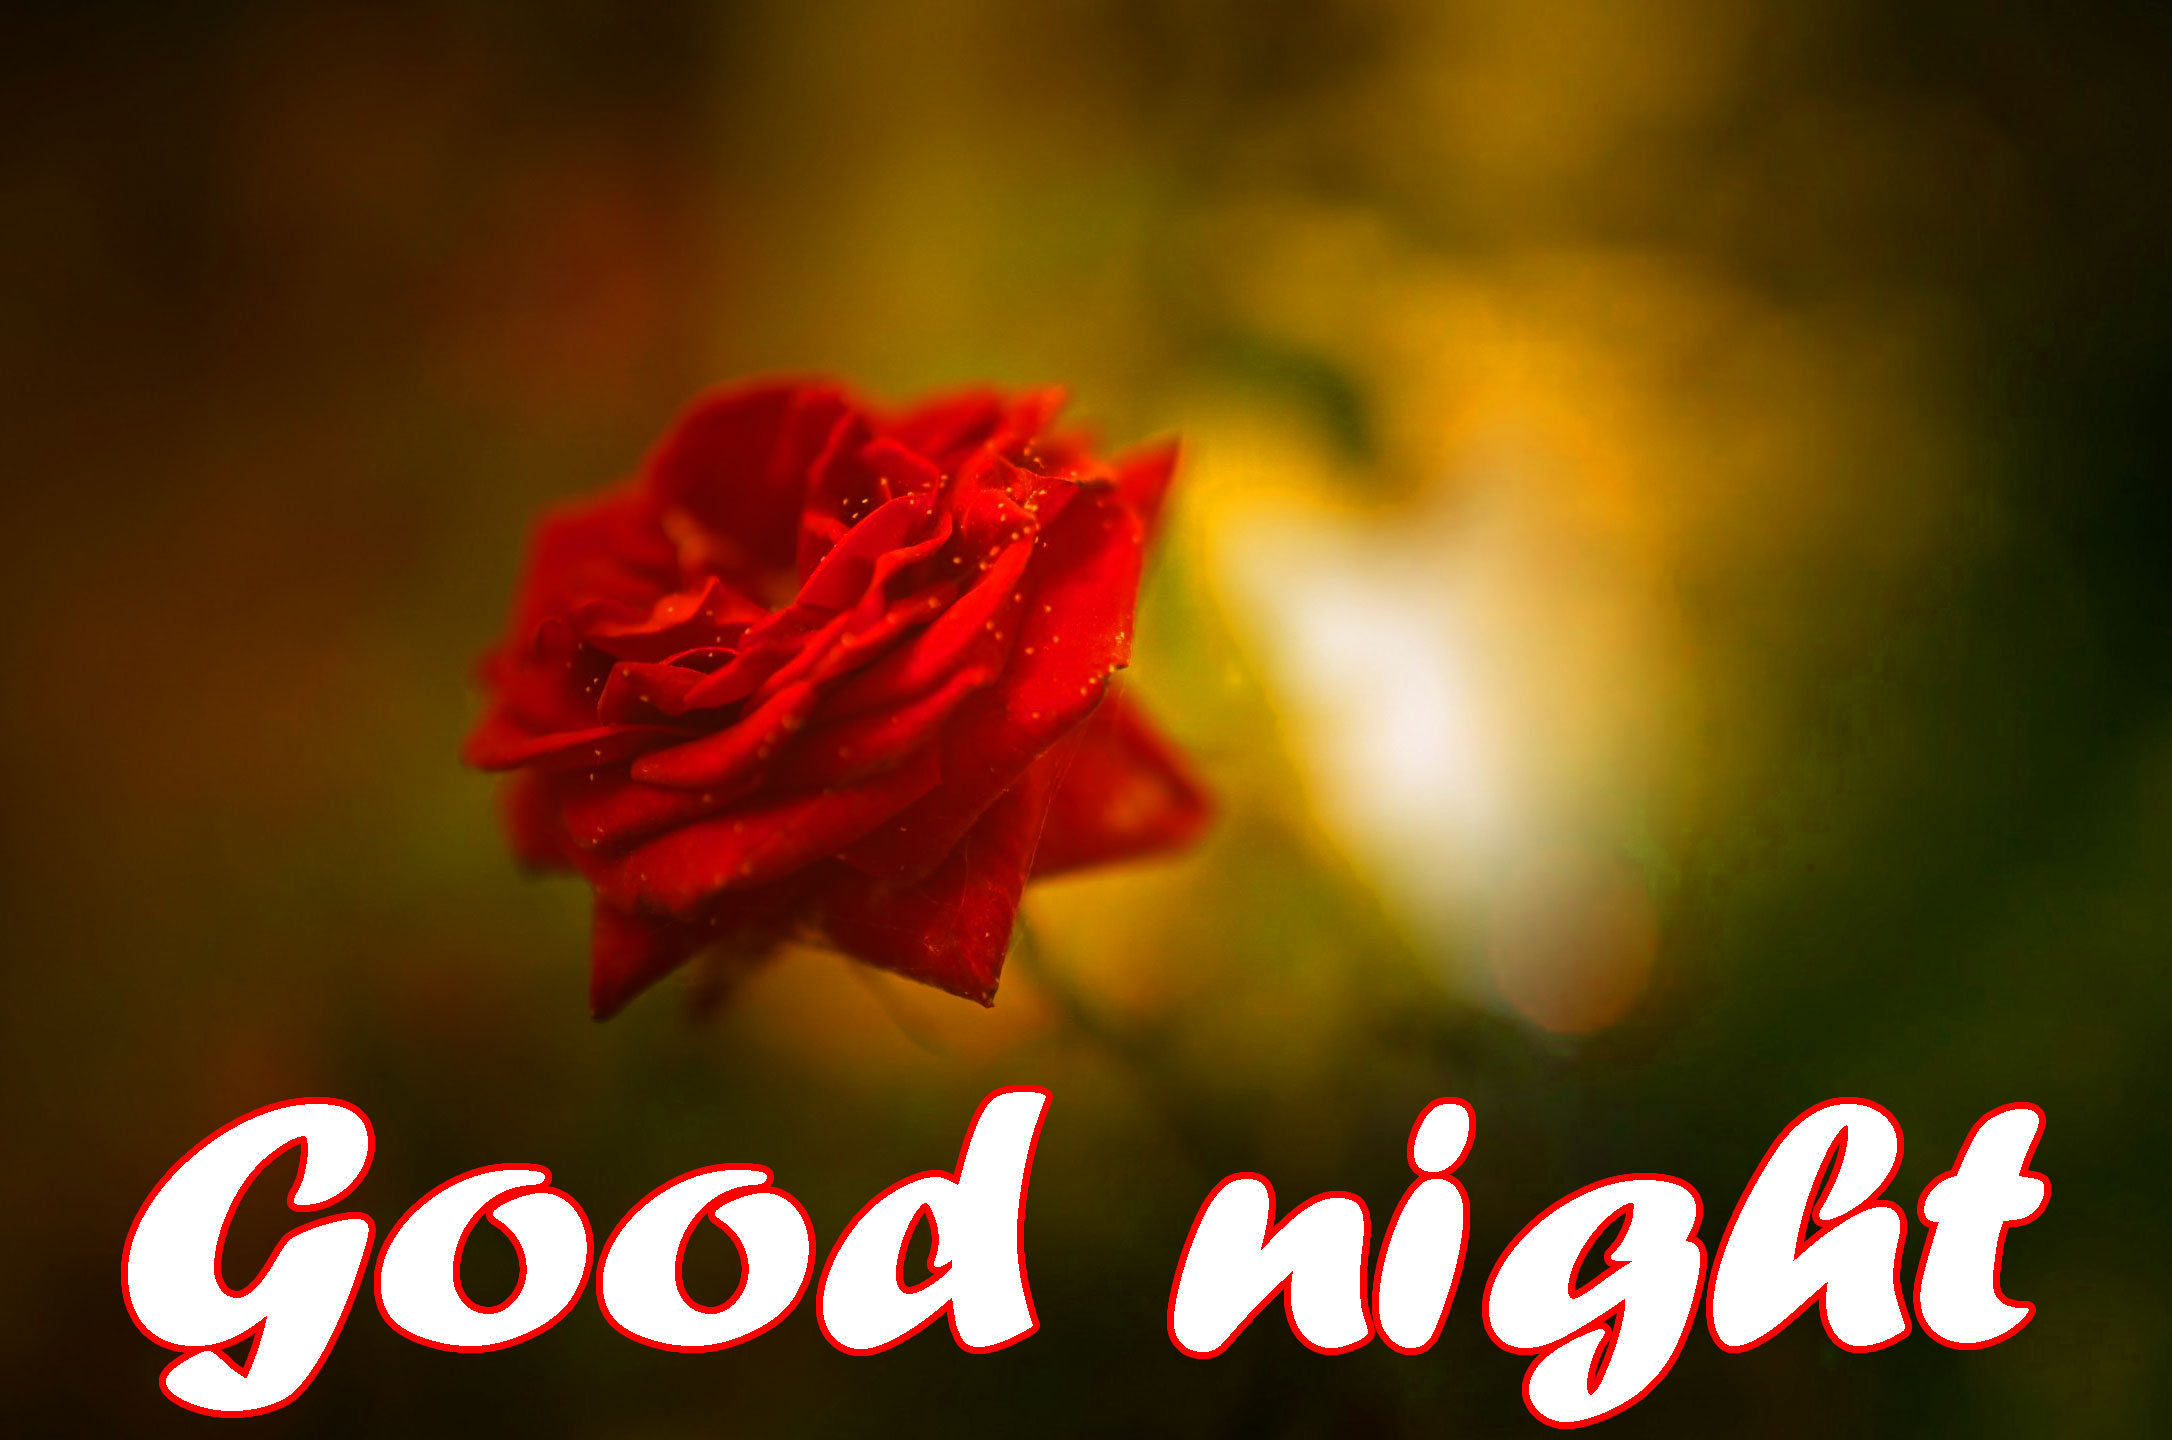 RED ROSE GOOD NIGHT WISHES IMAGES PICS WALLPAPER PICS DOWNLOAD